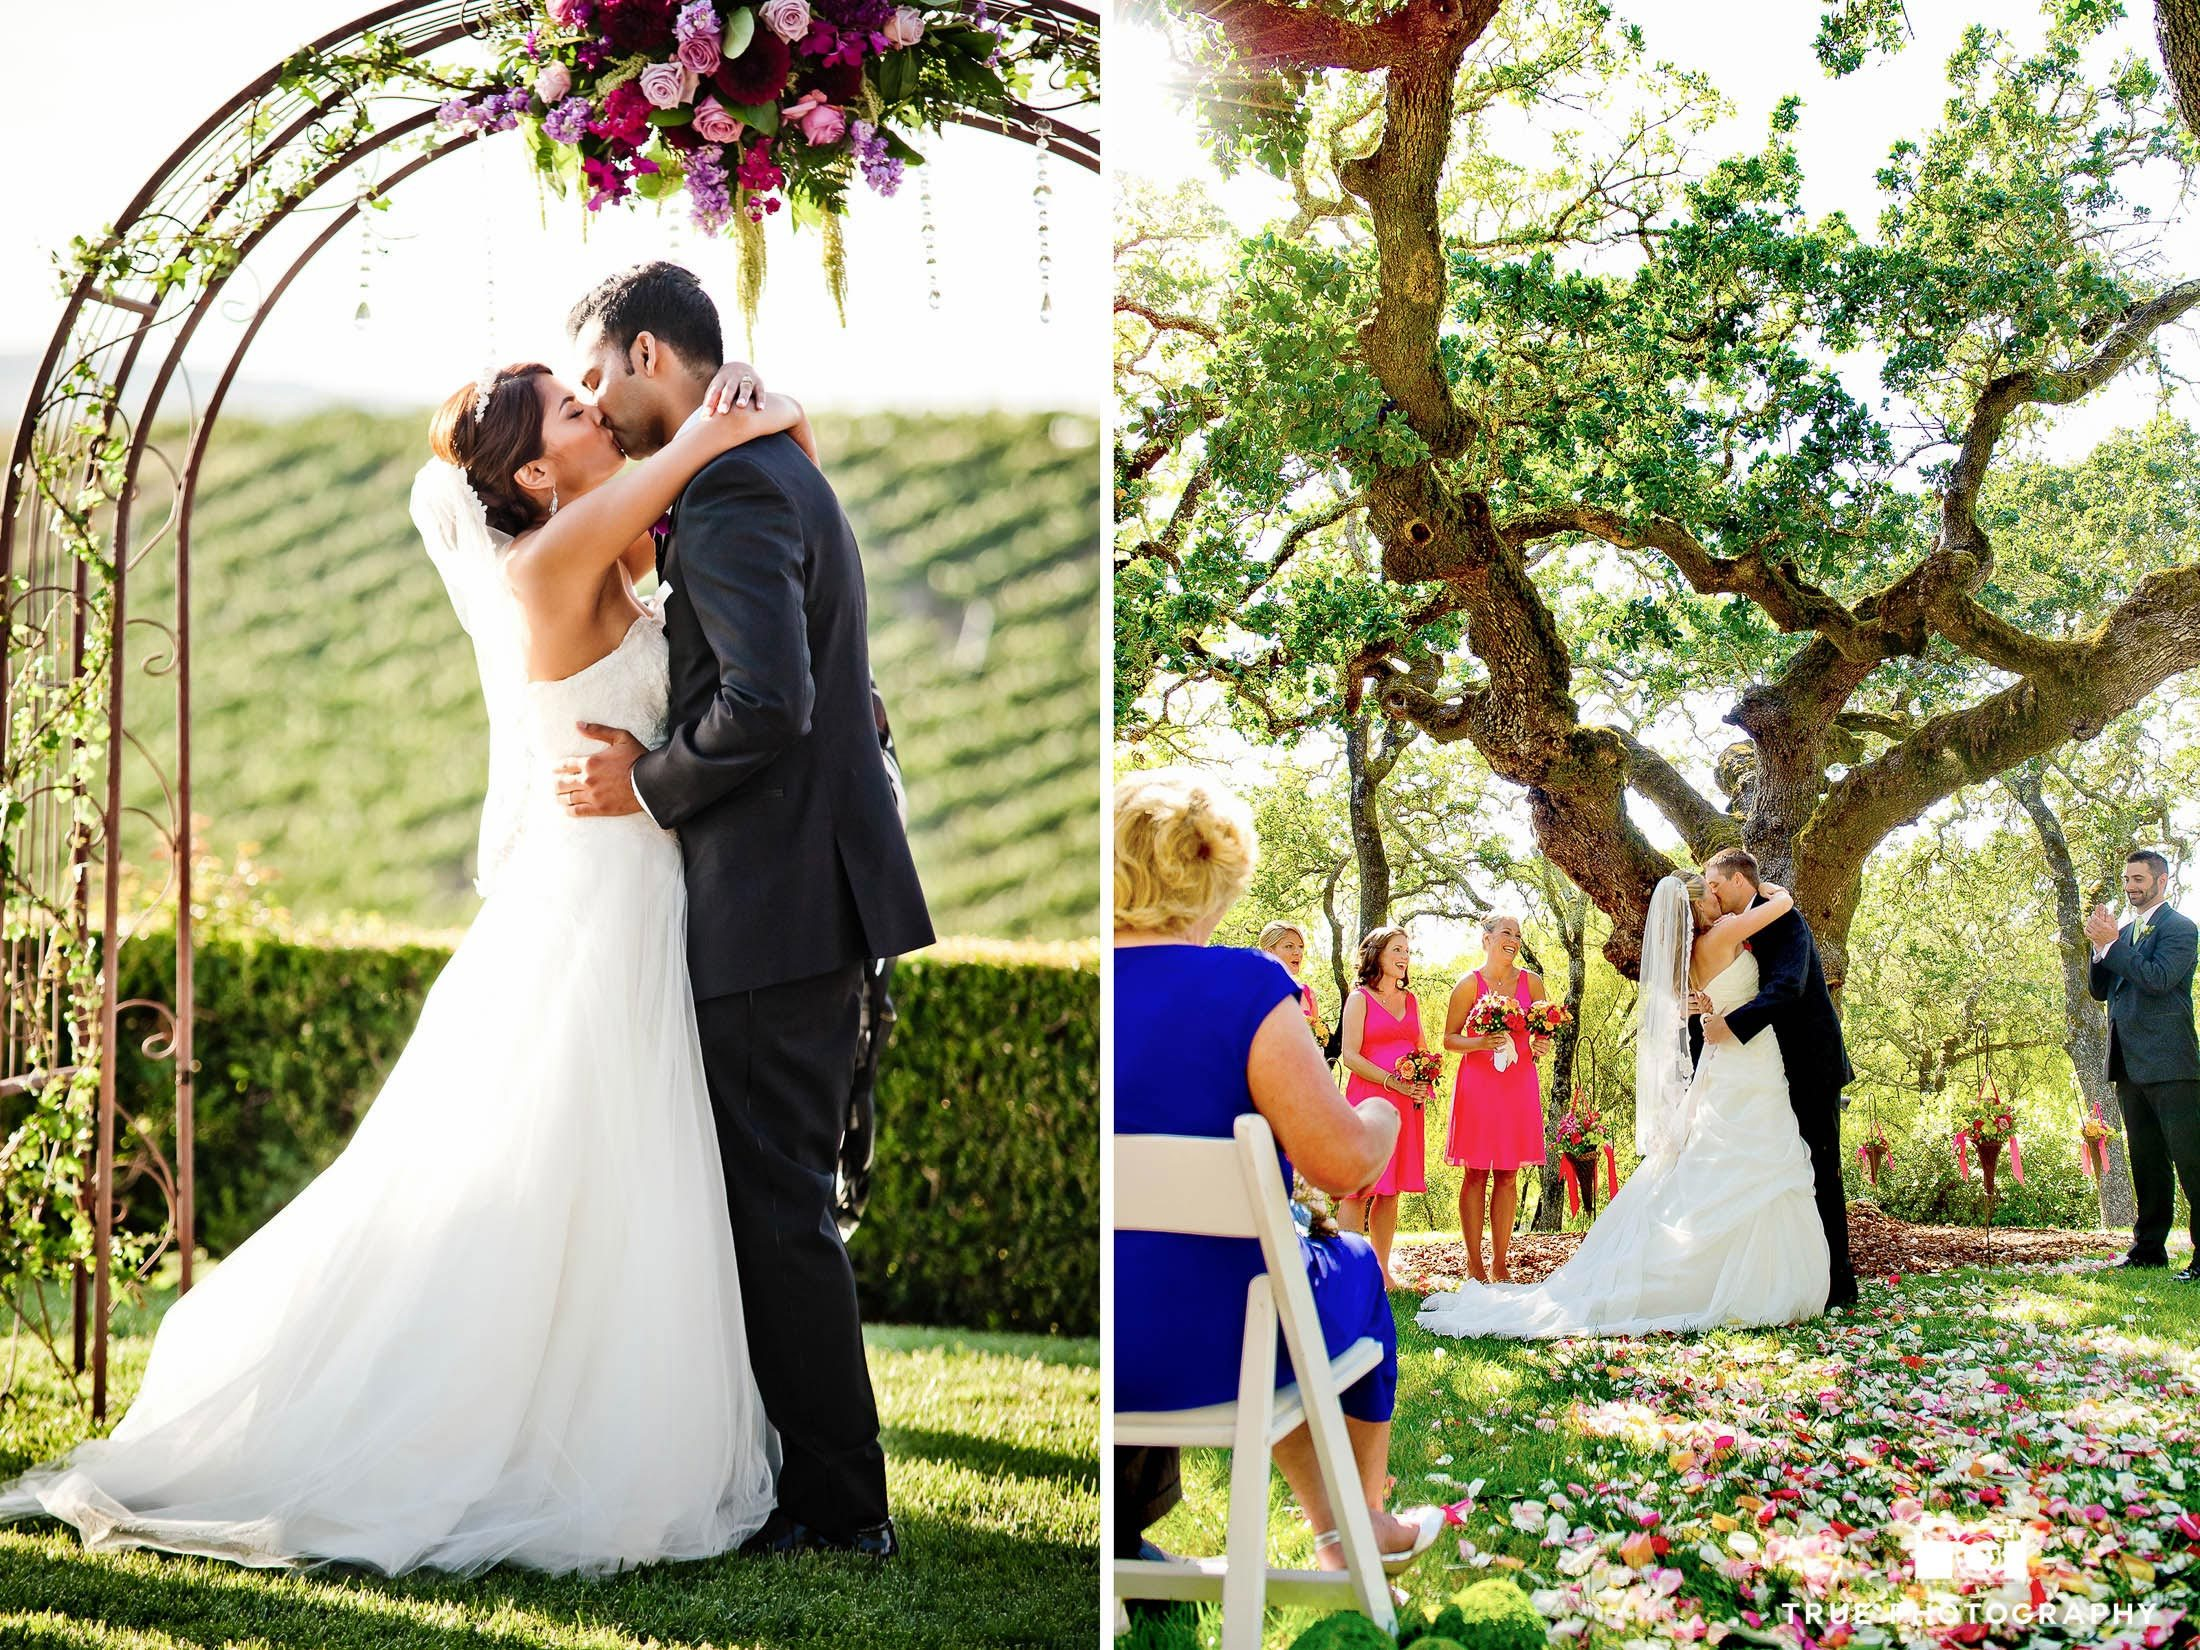 Couple's First Kiss during Vineyard Wedding